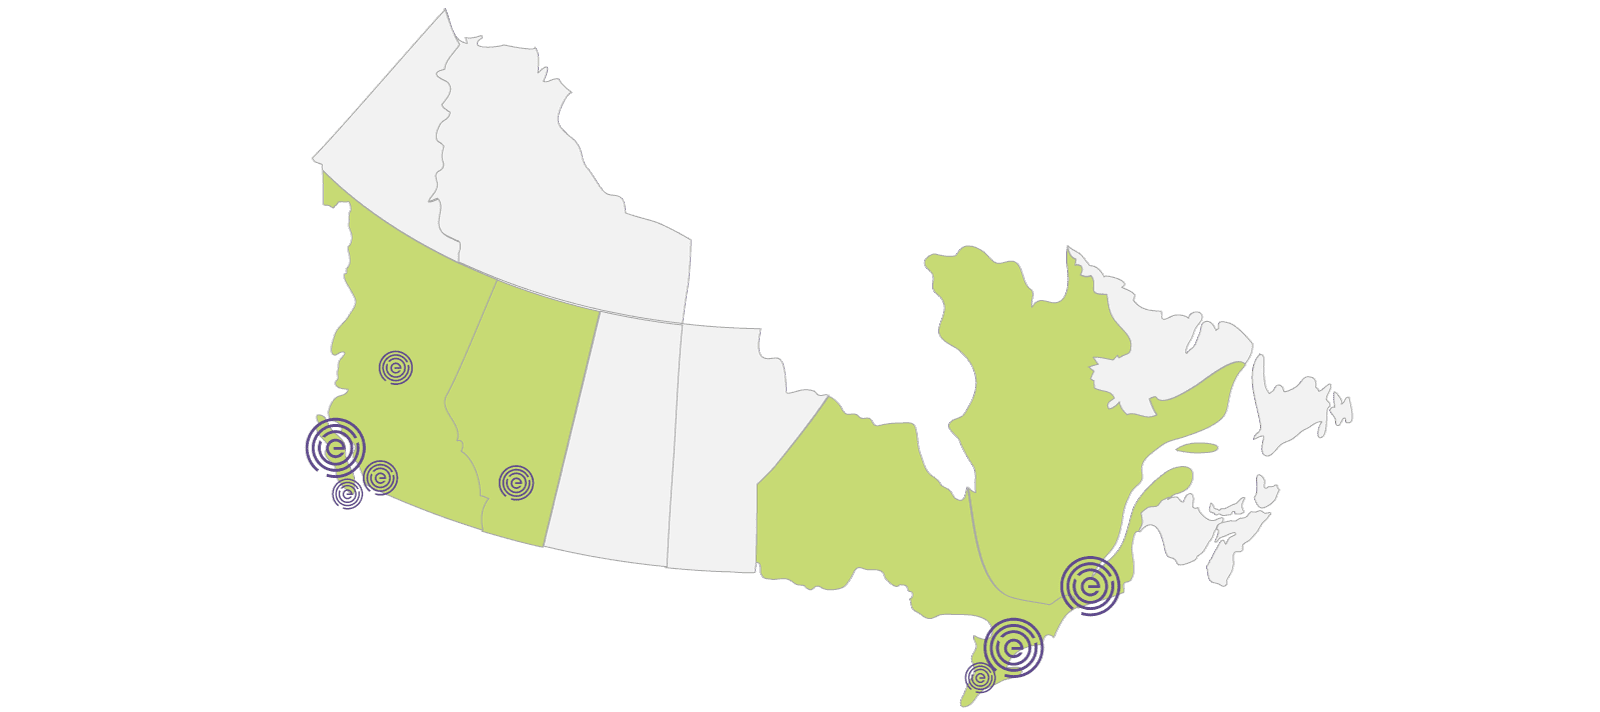 Edgewood Health Network Drug and Alcohol Rehab Facilities Canada Locations